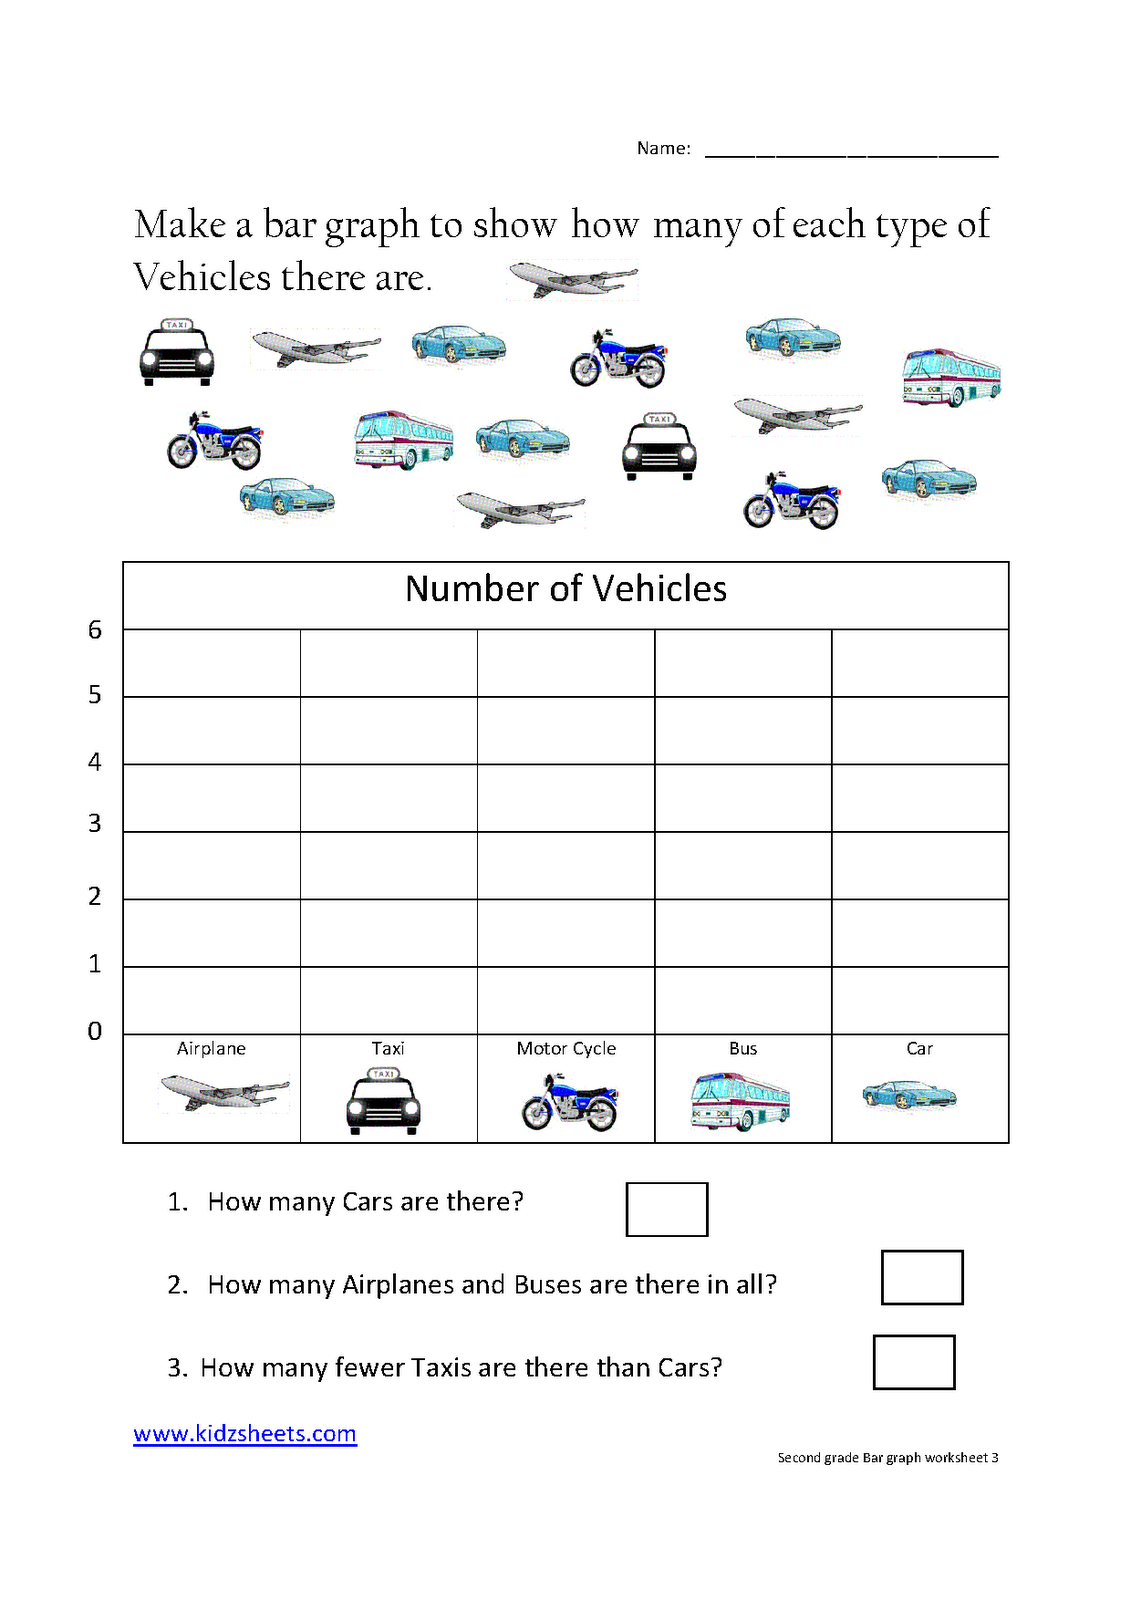 Kidz Worksheets Second Grade Bar Graph Worksheet3